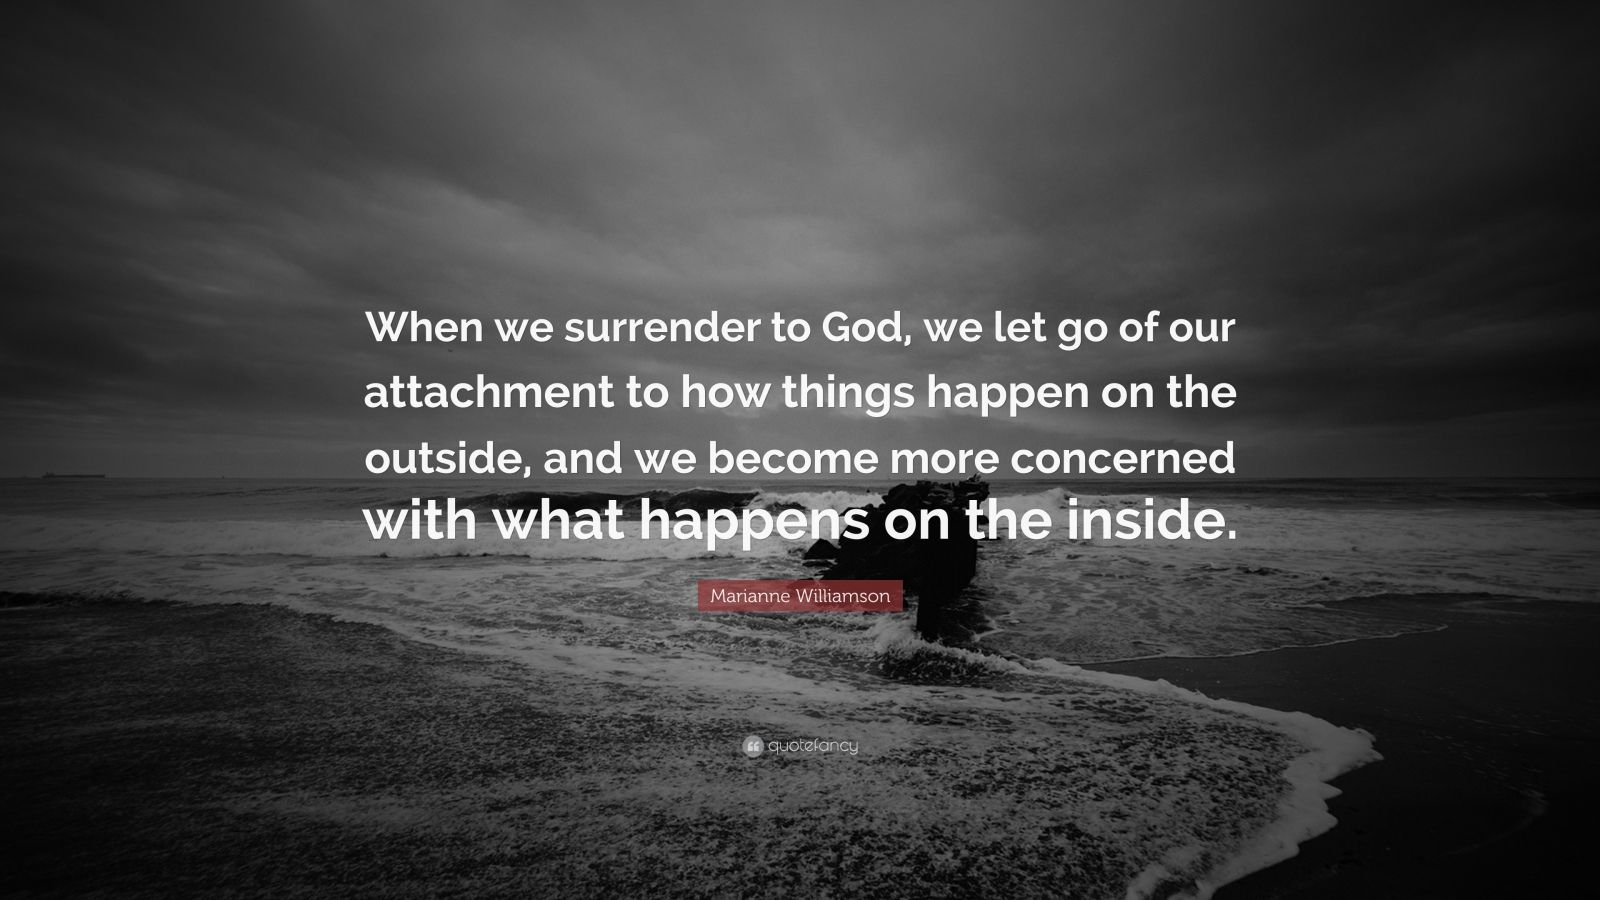 "Marianne Williamson Quote: ""When we surrender to God, we let go of our attachment to how things happen on the outside, and we become more concerned with what happens on the inside."""